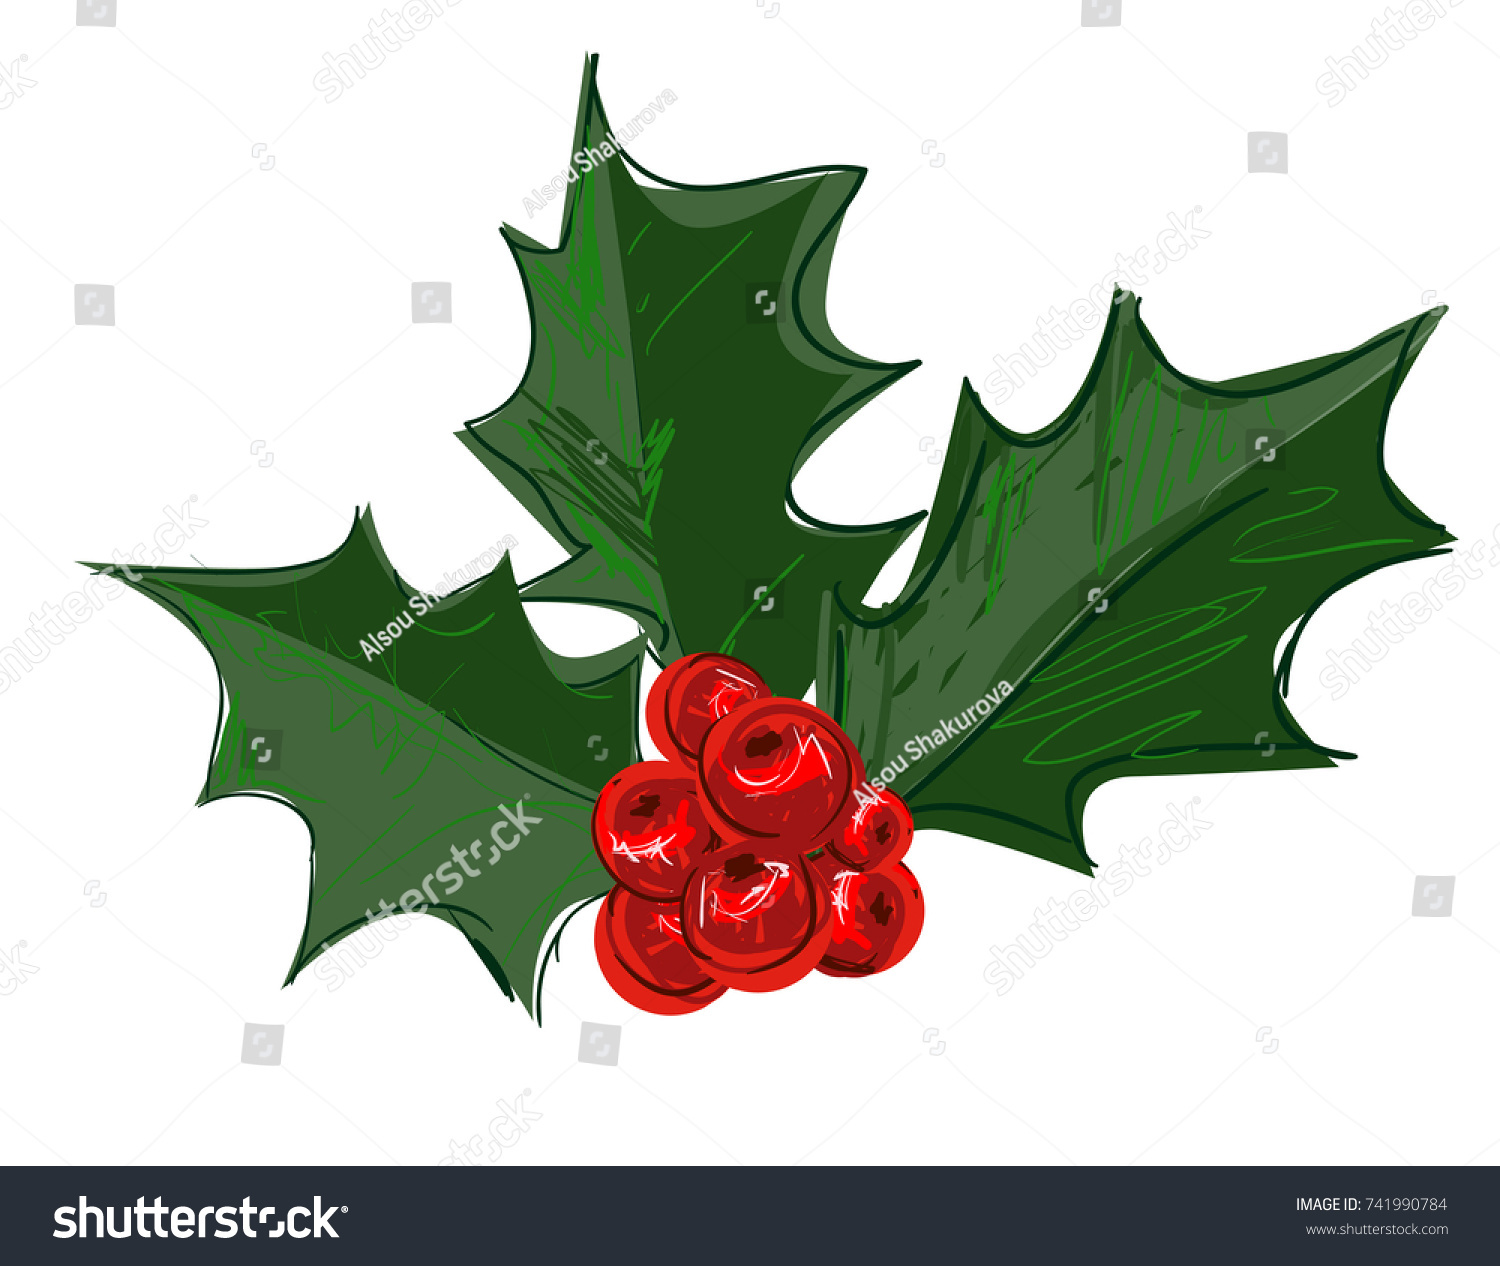 What Does the Christmas Holly Plant Represent ...